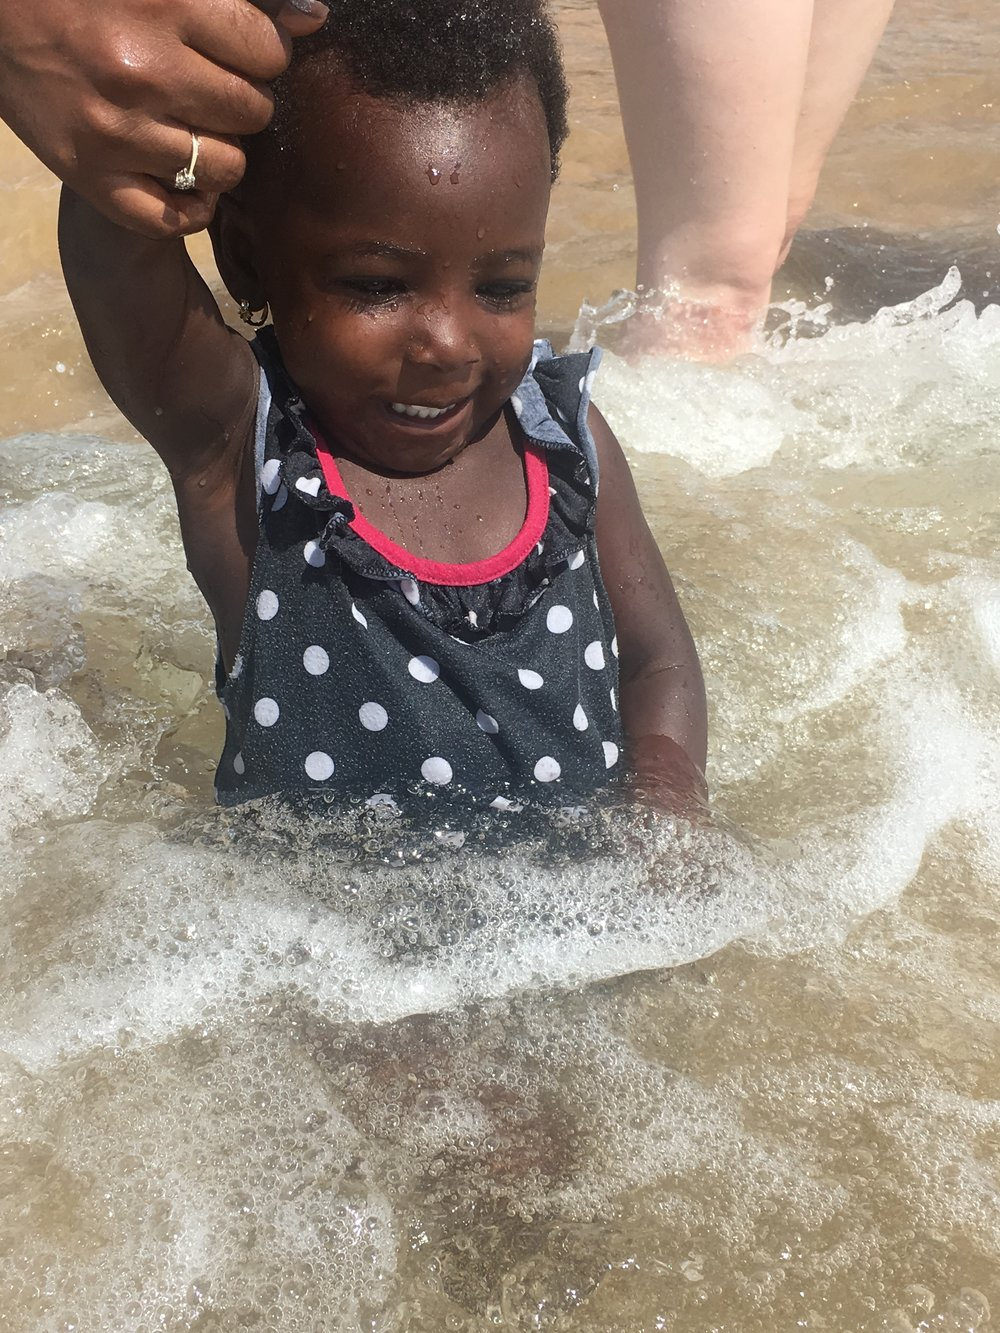 This little girl's family worked on the beach. She was so adorable and fearless!! She loved the water.